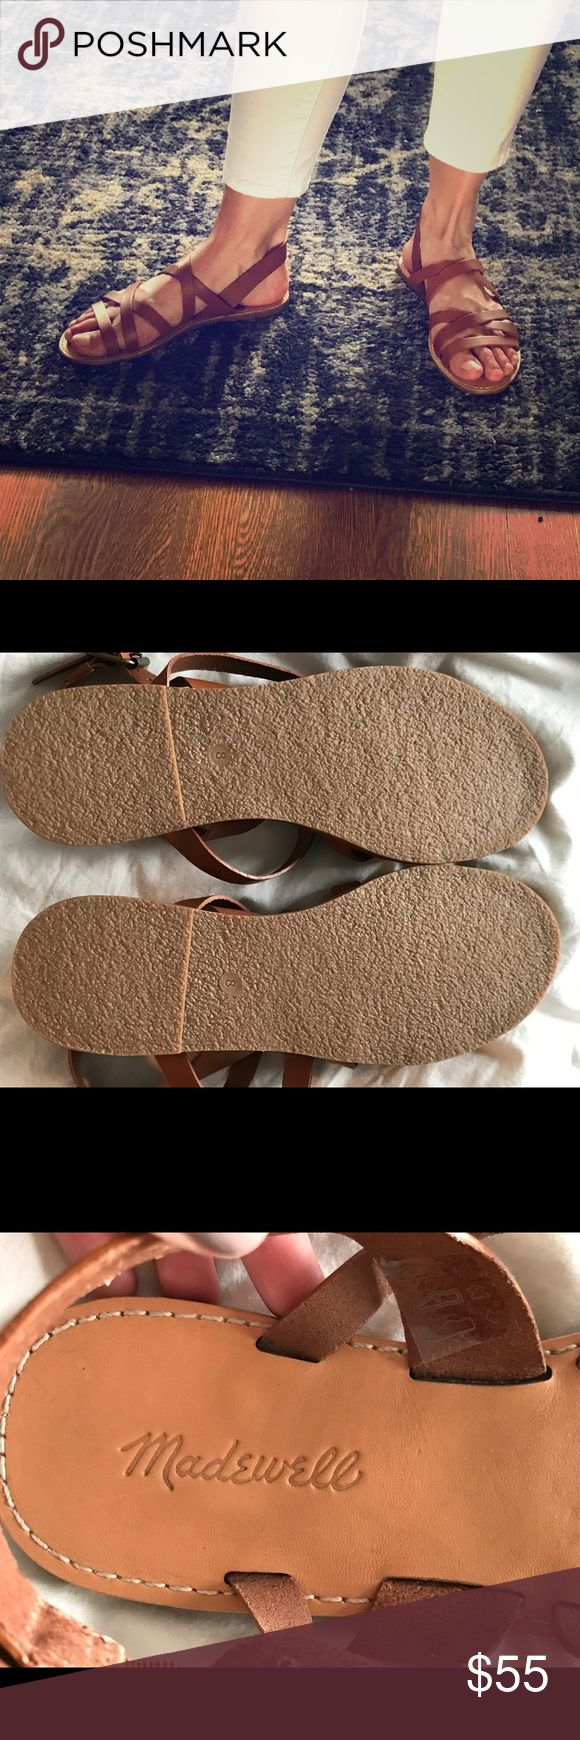 Madewell Tan Leather Sandals Size 8 - NEW! Brand new Madewell sandals - tags off, never worn Madewell Shoes Sandals